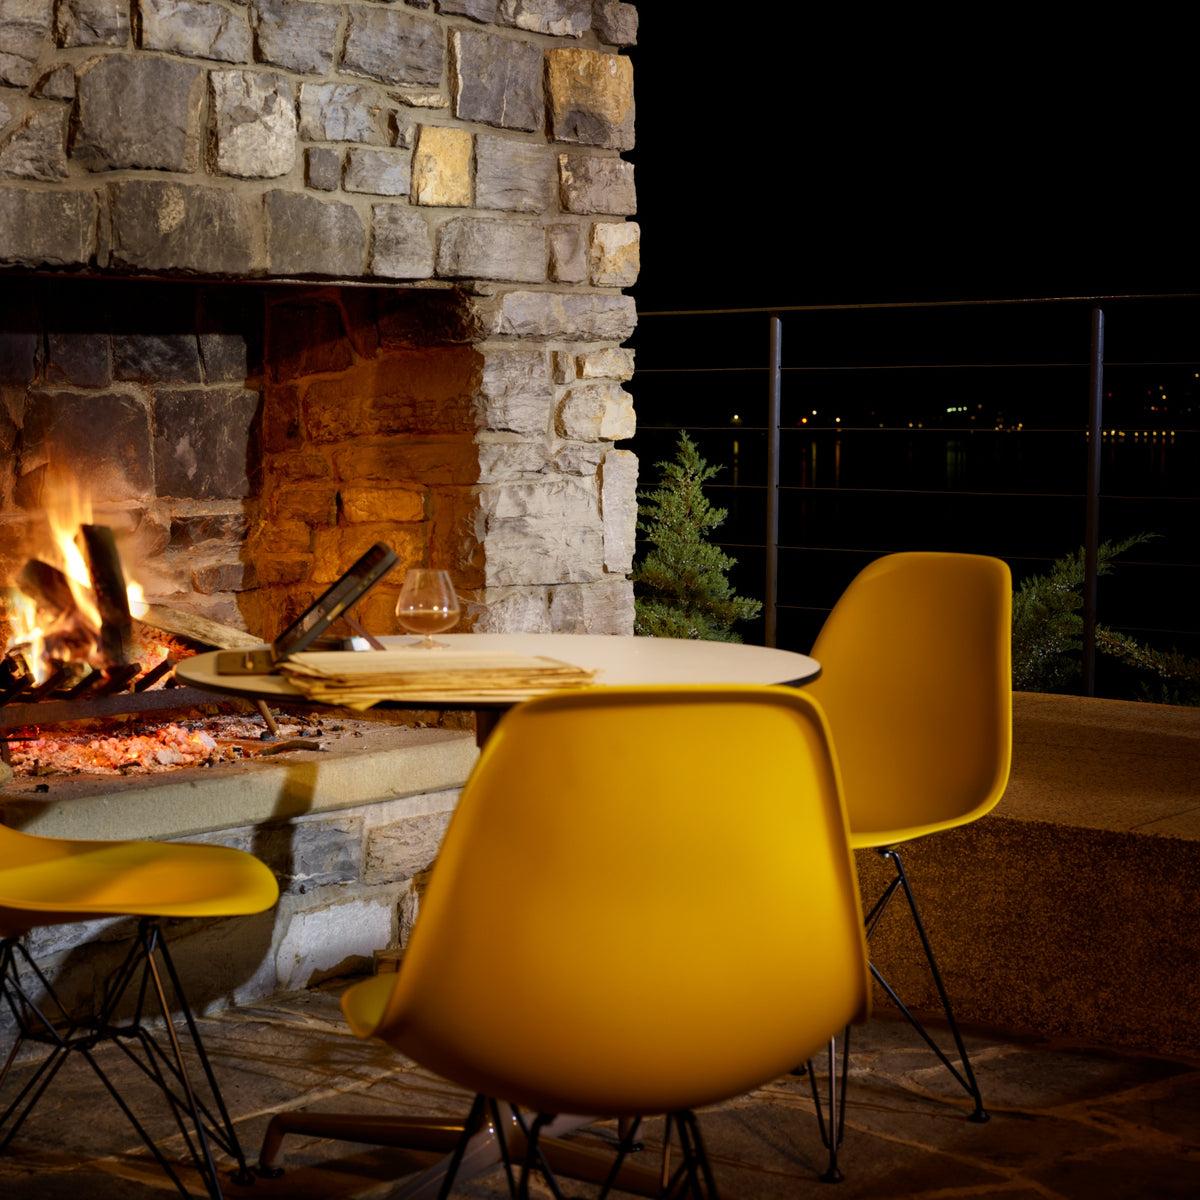 Vitra Eames Plastic Side Chair DSR Powder Coated for Outdoor Use. Outdoor Fire Setting